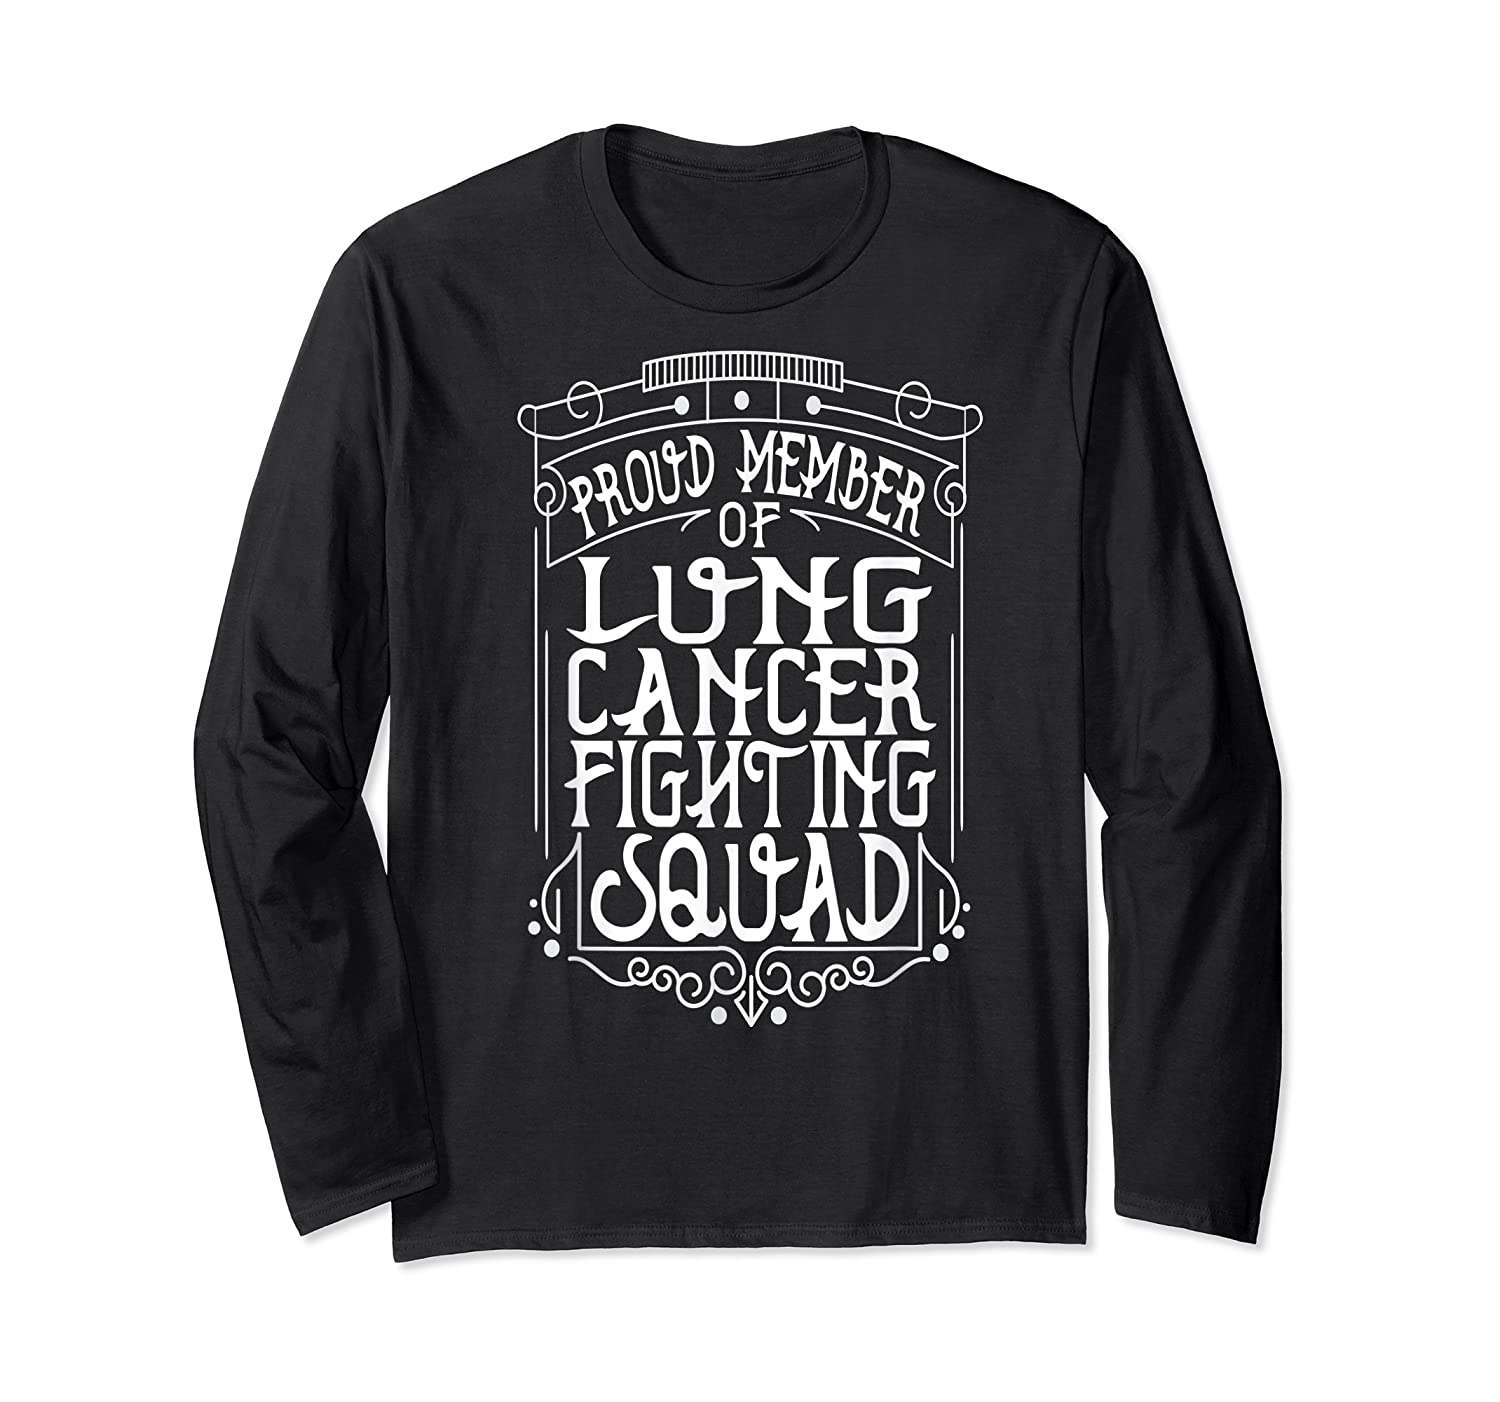 Fighting Squad Lung Cancer Awareness T-shirt Long Sleeve T-shirt